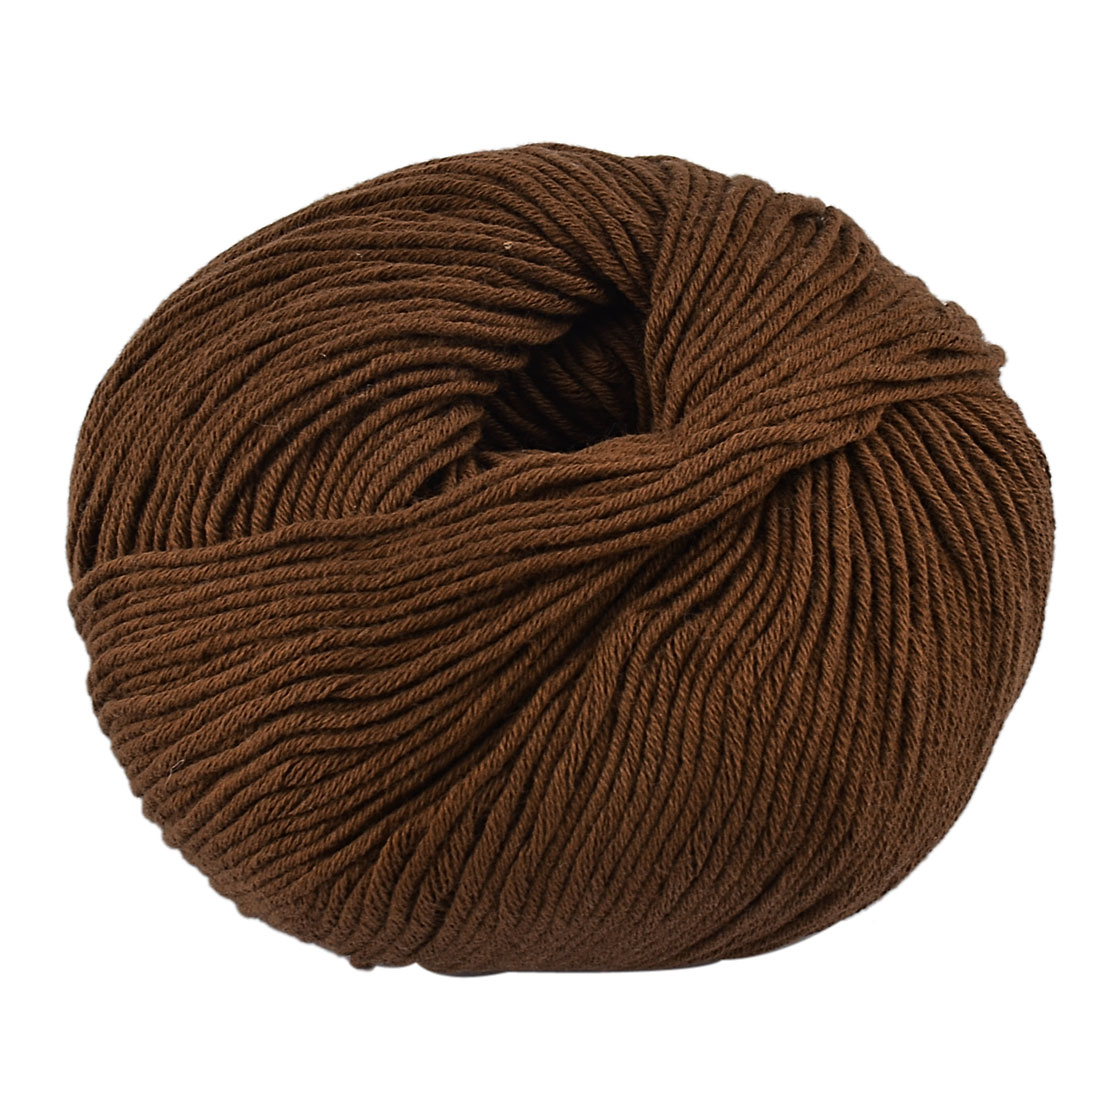 Household Cotton Handcraft Hand Knitting DIY Scarf Hat Sweater Yarn Brown